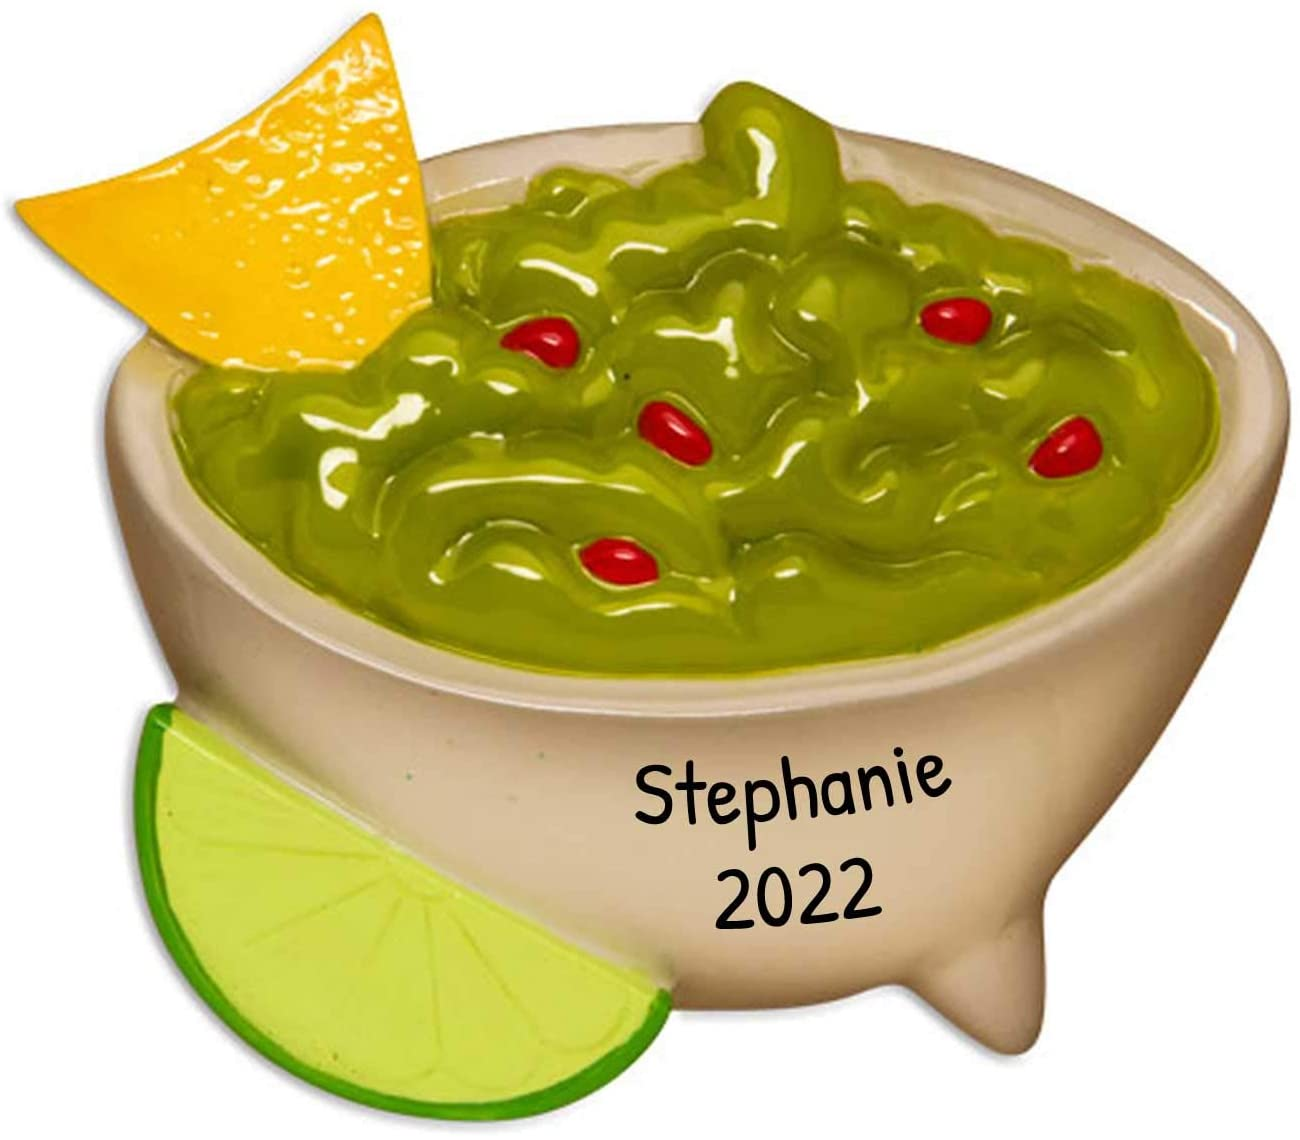 Personalized Guacamole Christmas Tree Ornament 2020 - Delicious Avocado Dip Spread Salad Tortilla Chips Lime First Job Love Favorite Mexican Party Eat Restaurant Food Gift Year - Free Customization